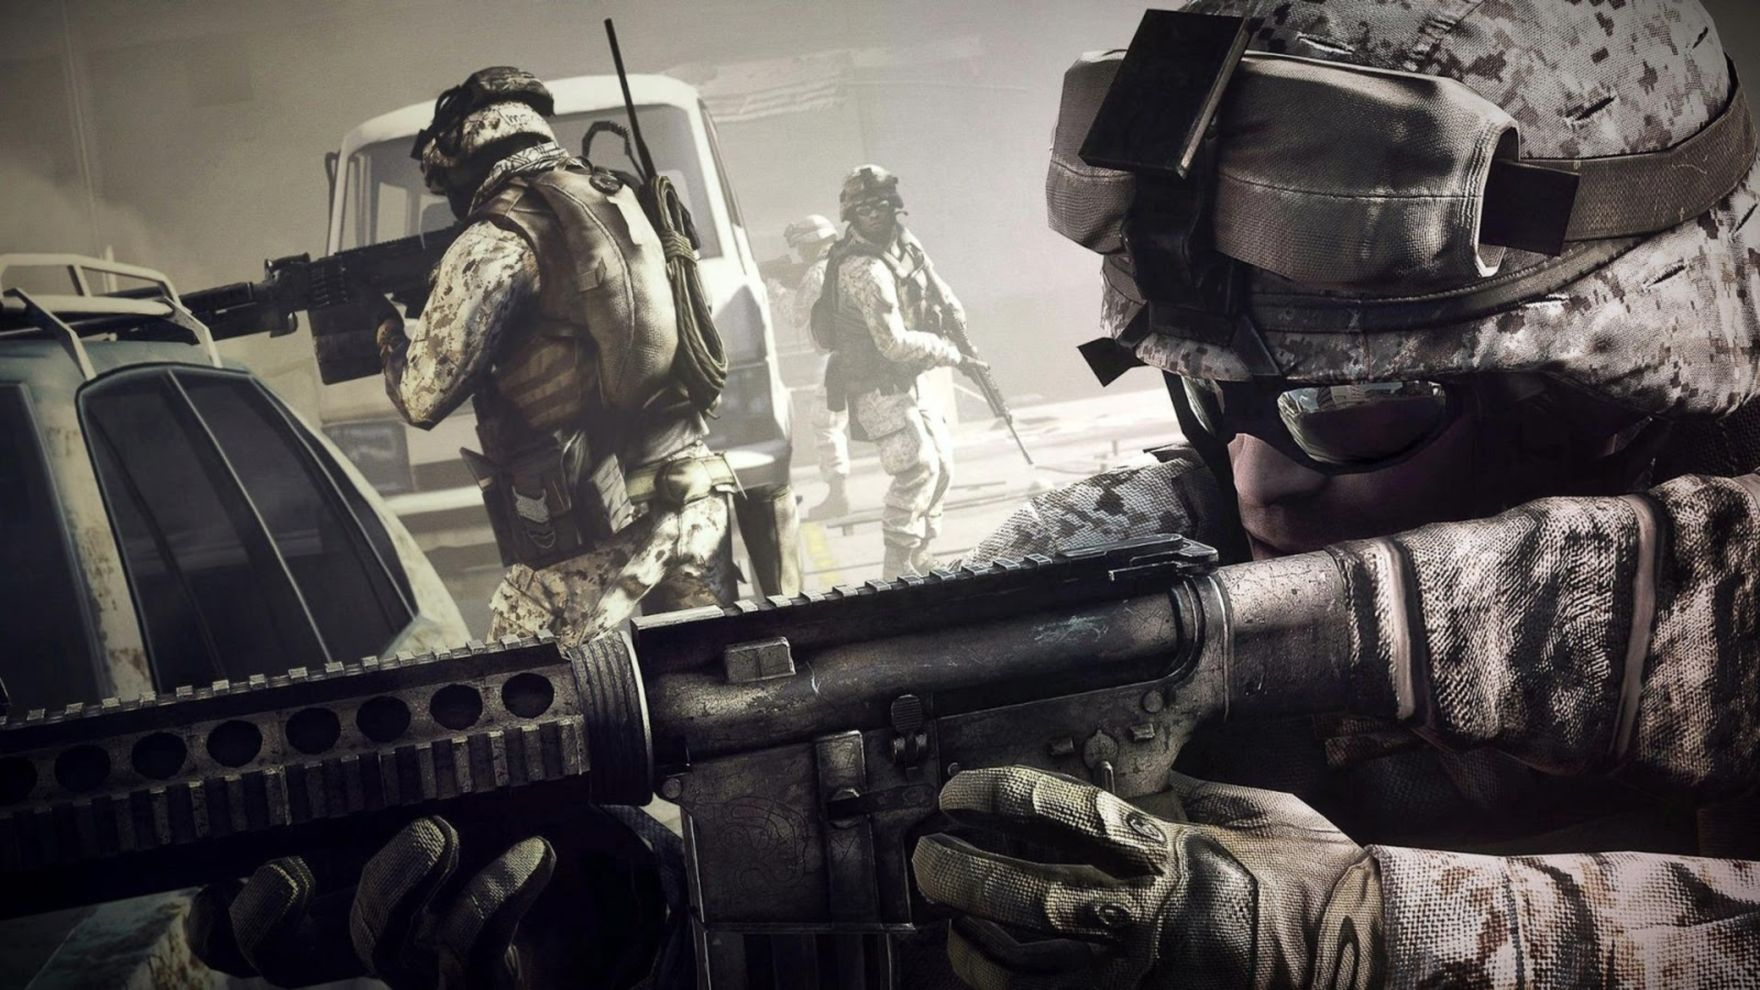 Download free HD Battlefield 4 1080p Full HD Wallpaper, image